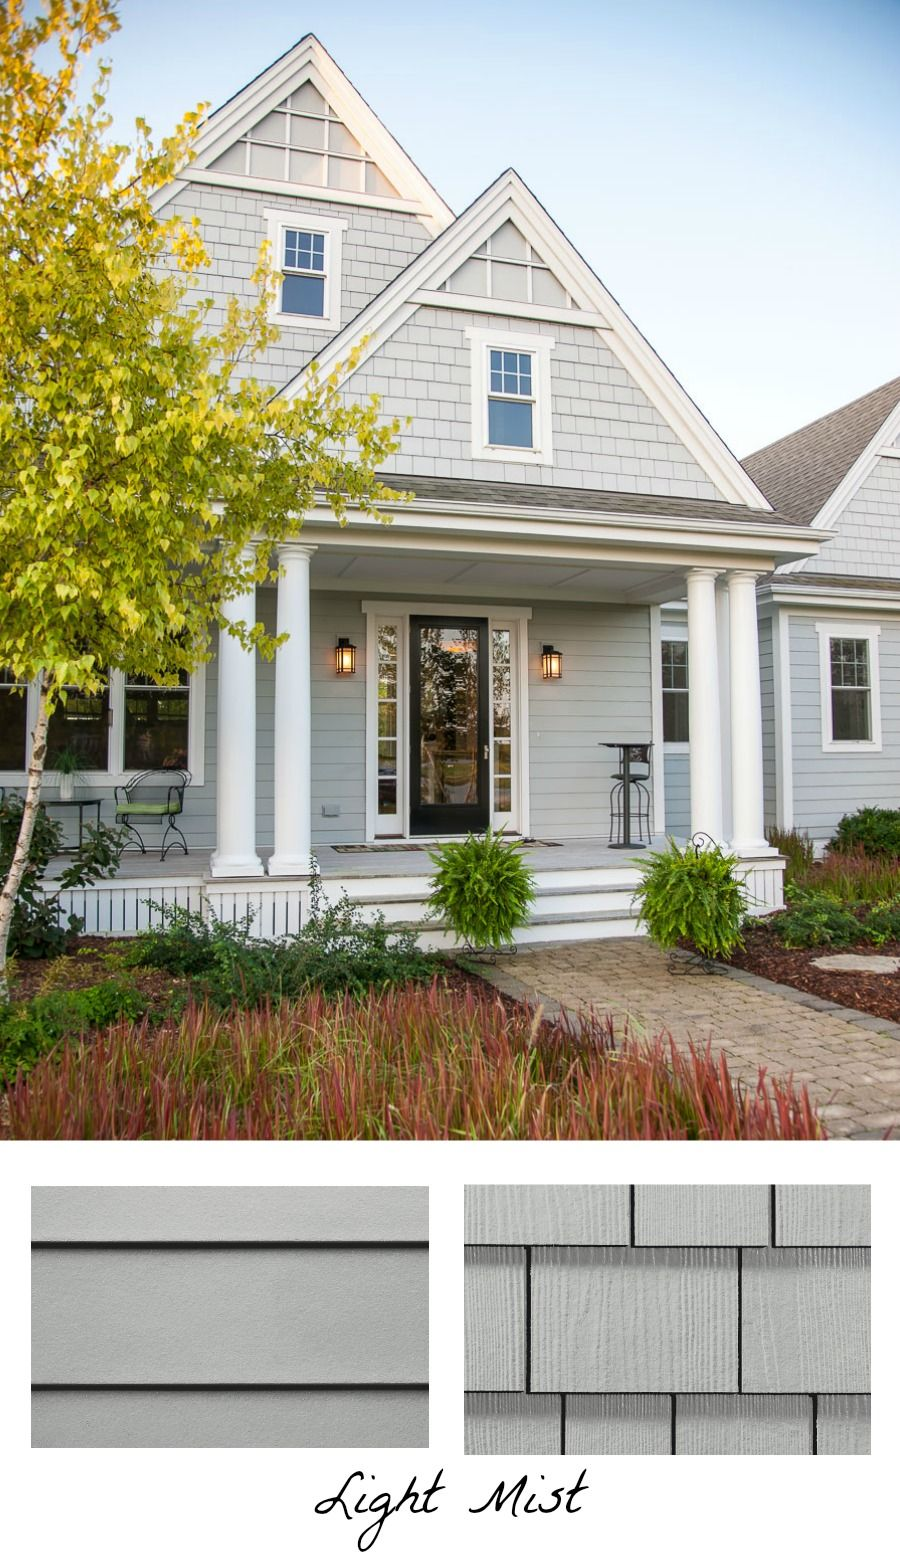 Exterior Inspiration: Favorite Home Design & Color Ideas! #greyexteriorhousecolors